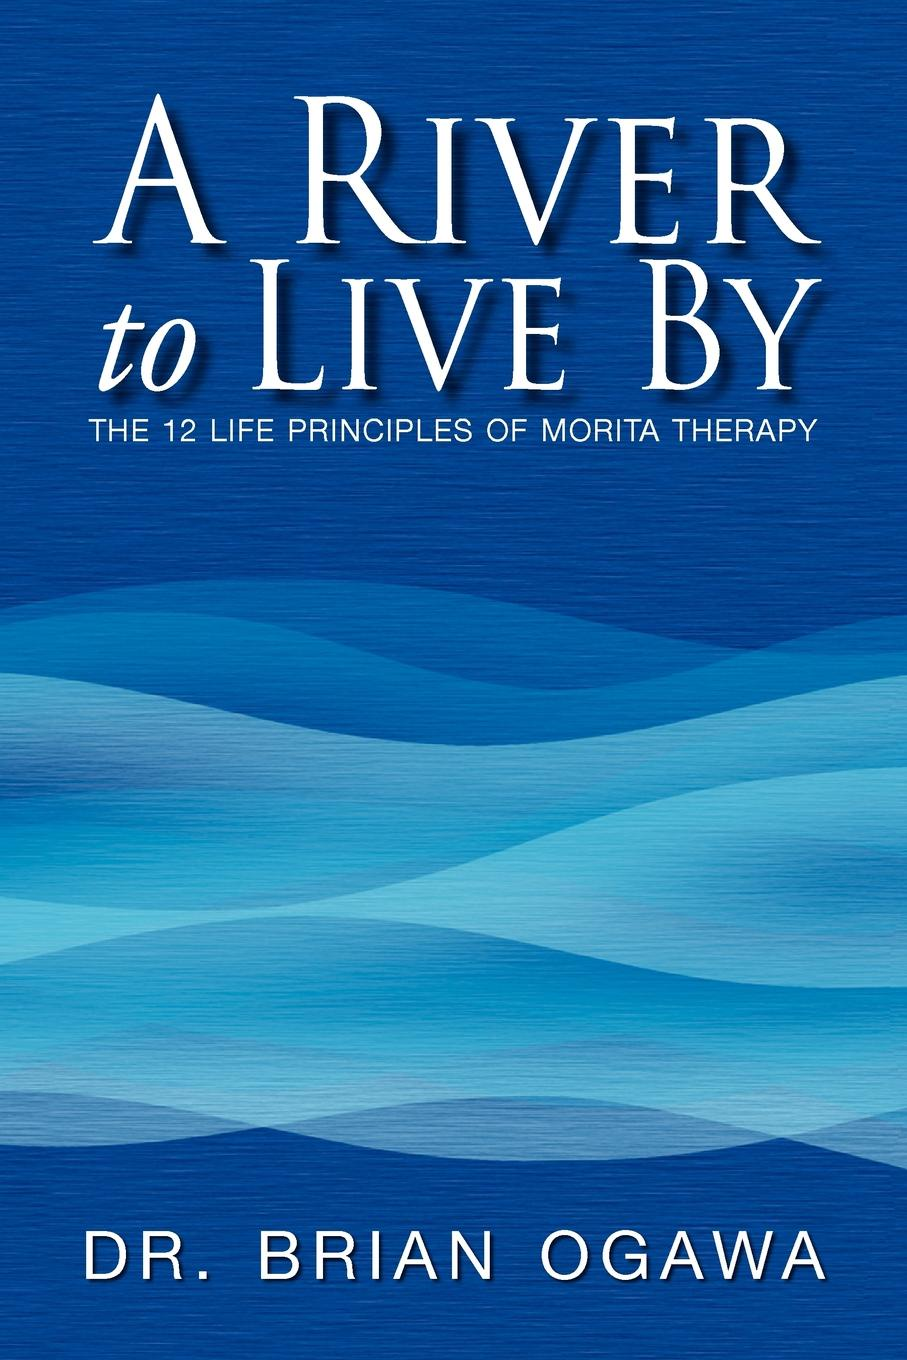 Brian Ogawa A River to Live by. The 12 Life Principles of Morita Therapy brian ogawa a river to live by the 12 life principles of morita therapy